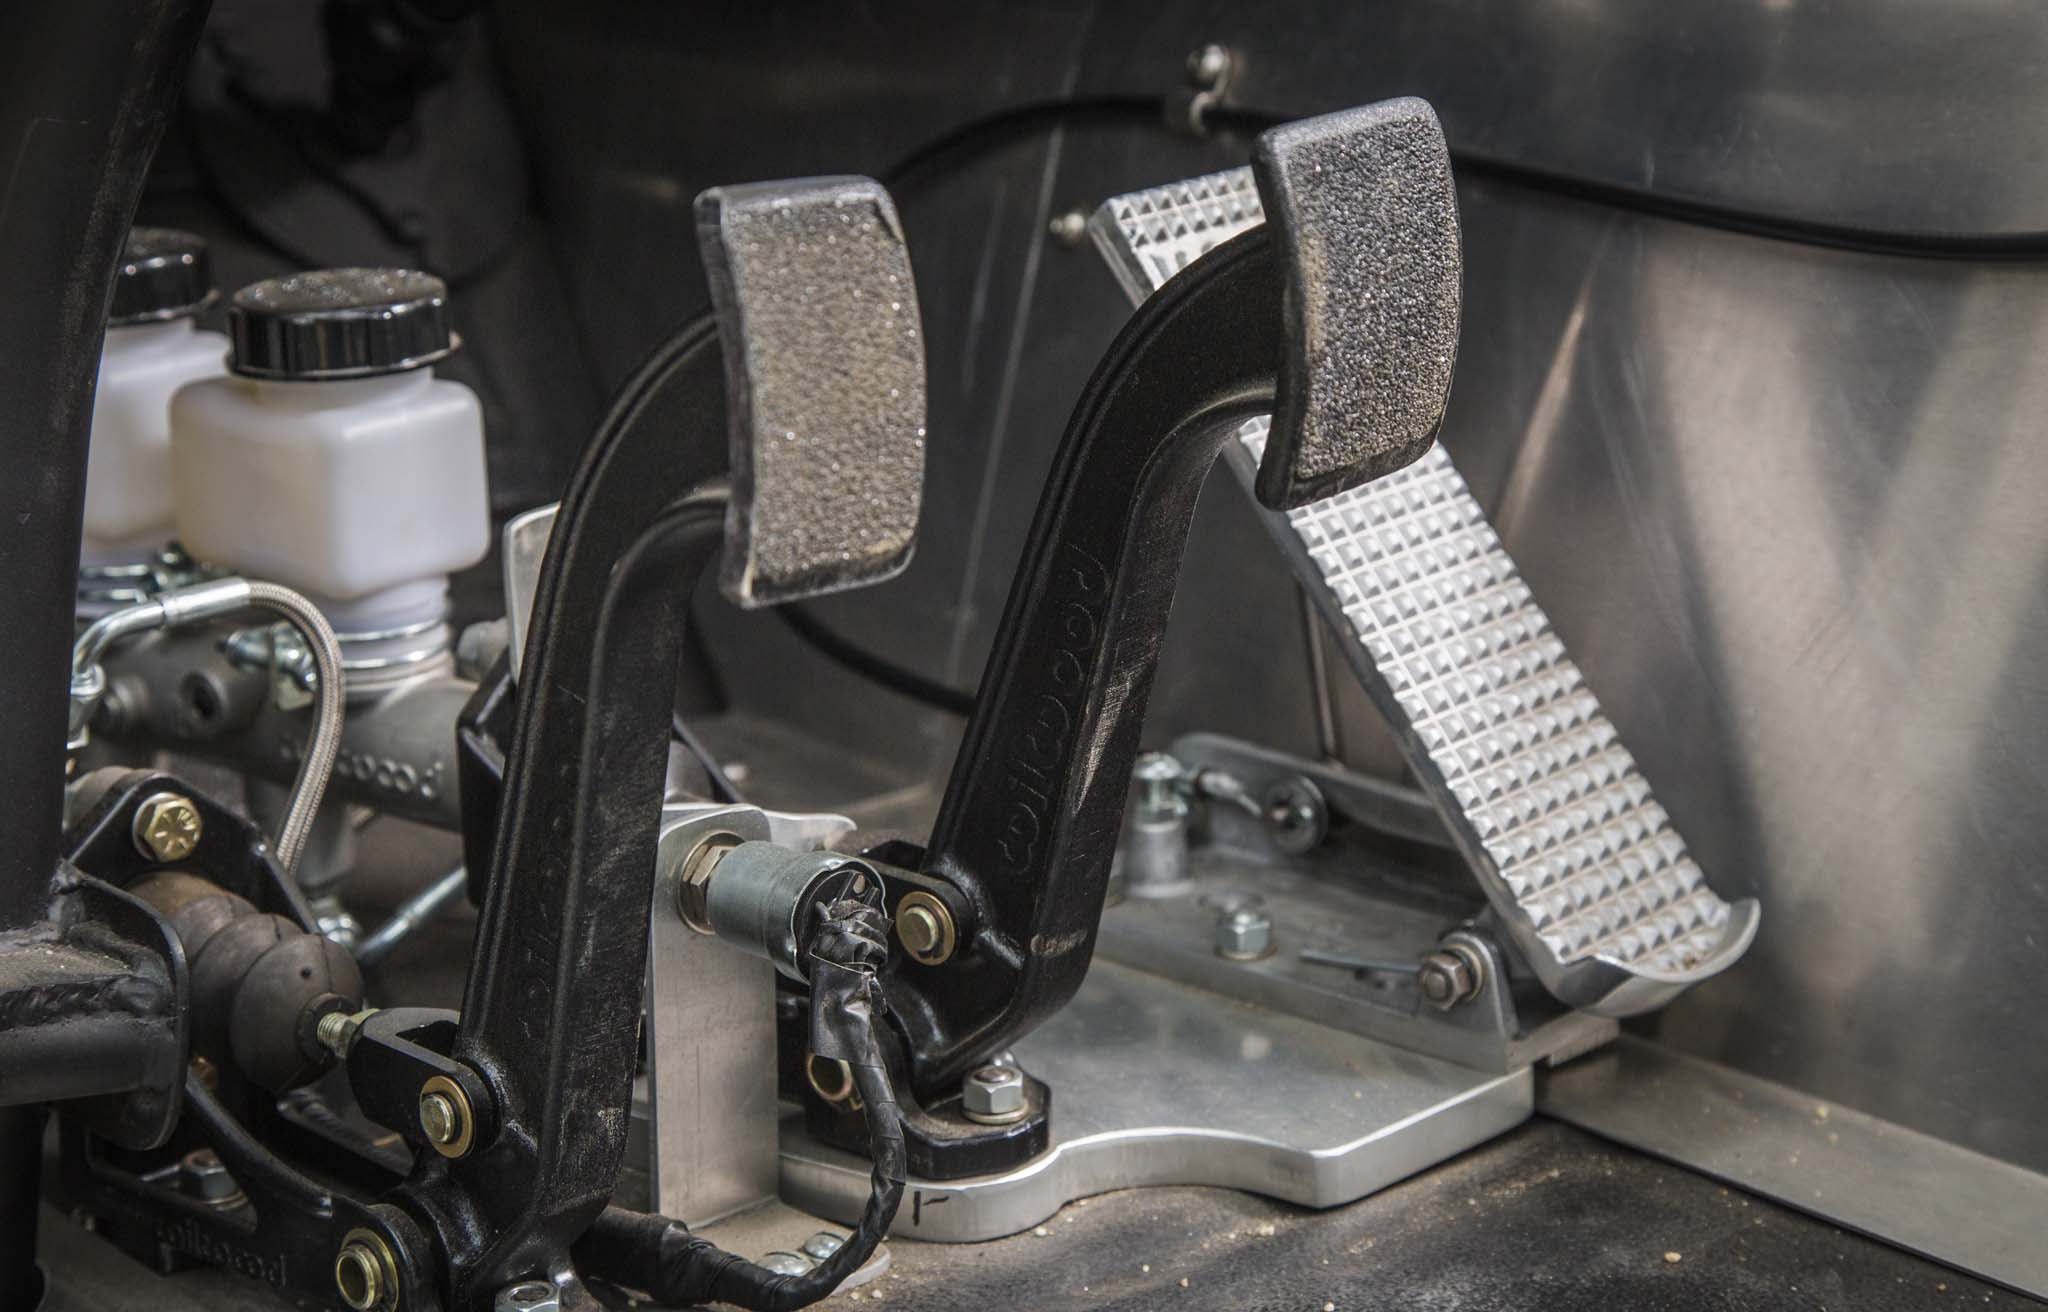 After sitting in his garage for years, the Chevy needed a freshening, which Ernie undertook about five years ago. Not much was needed to bring it back, he says; Wilwood pedals and reservoirs are among the late additions, done in addition to the clutch.